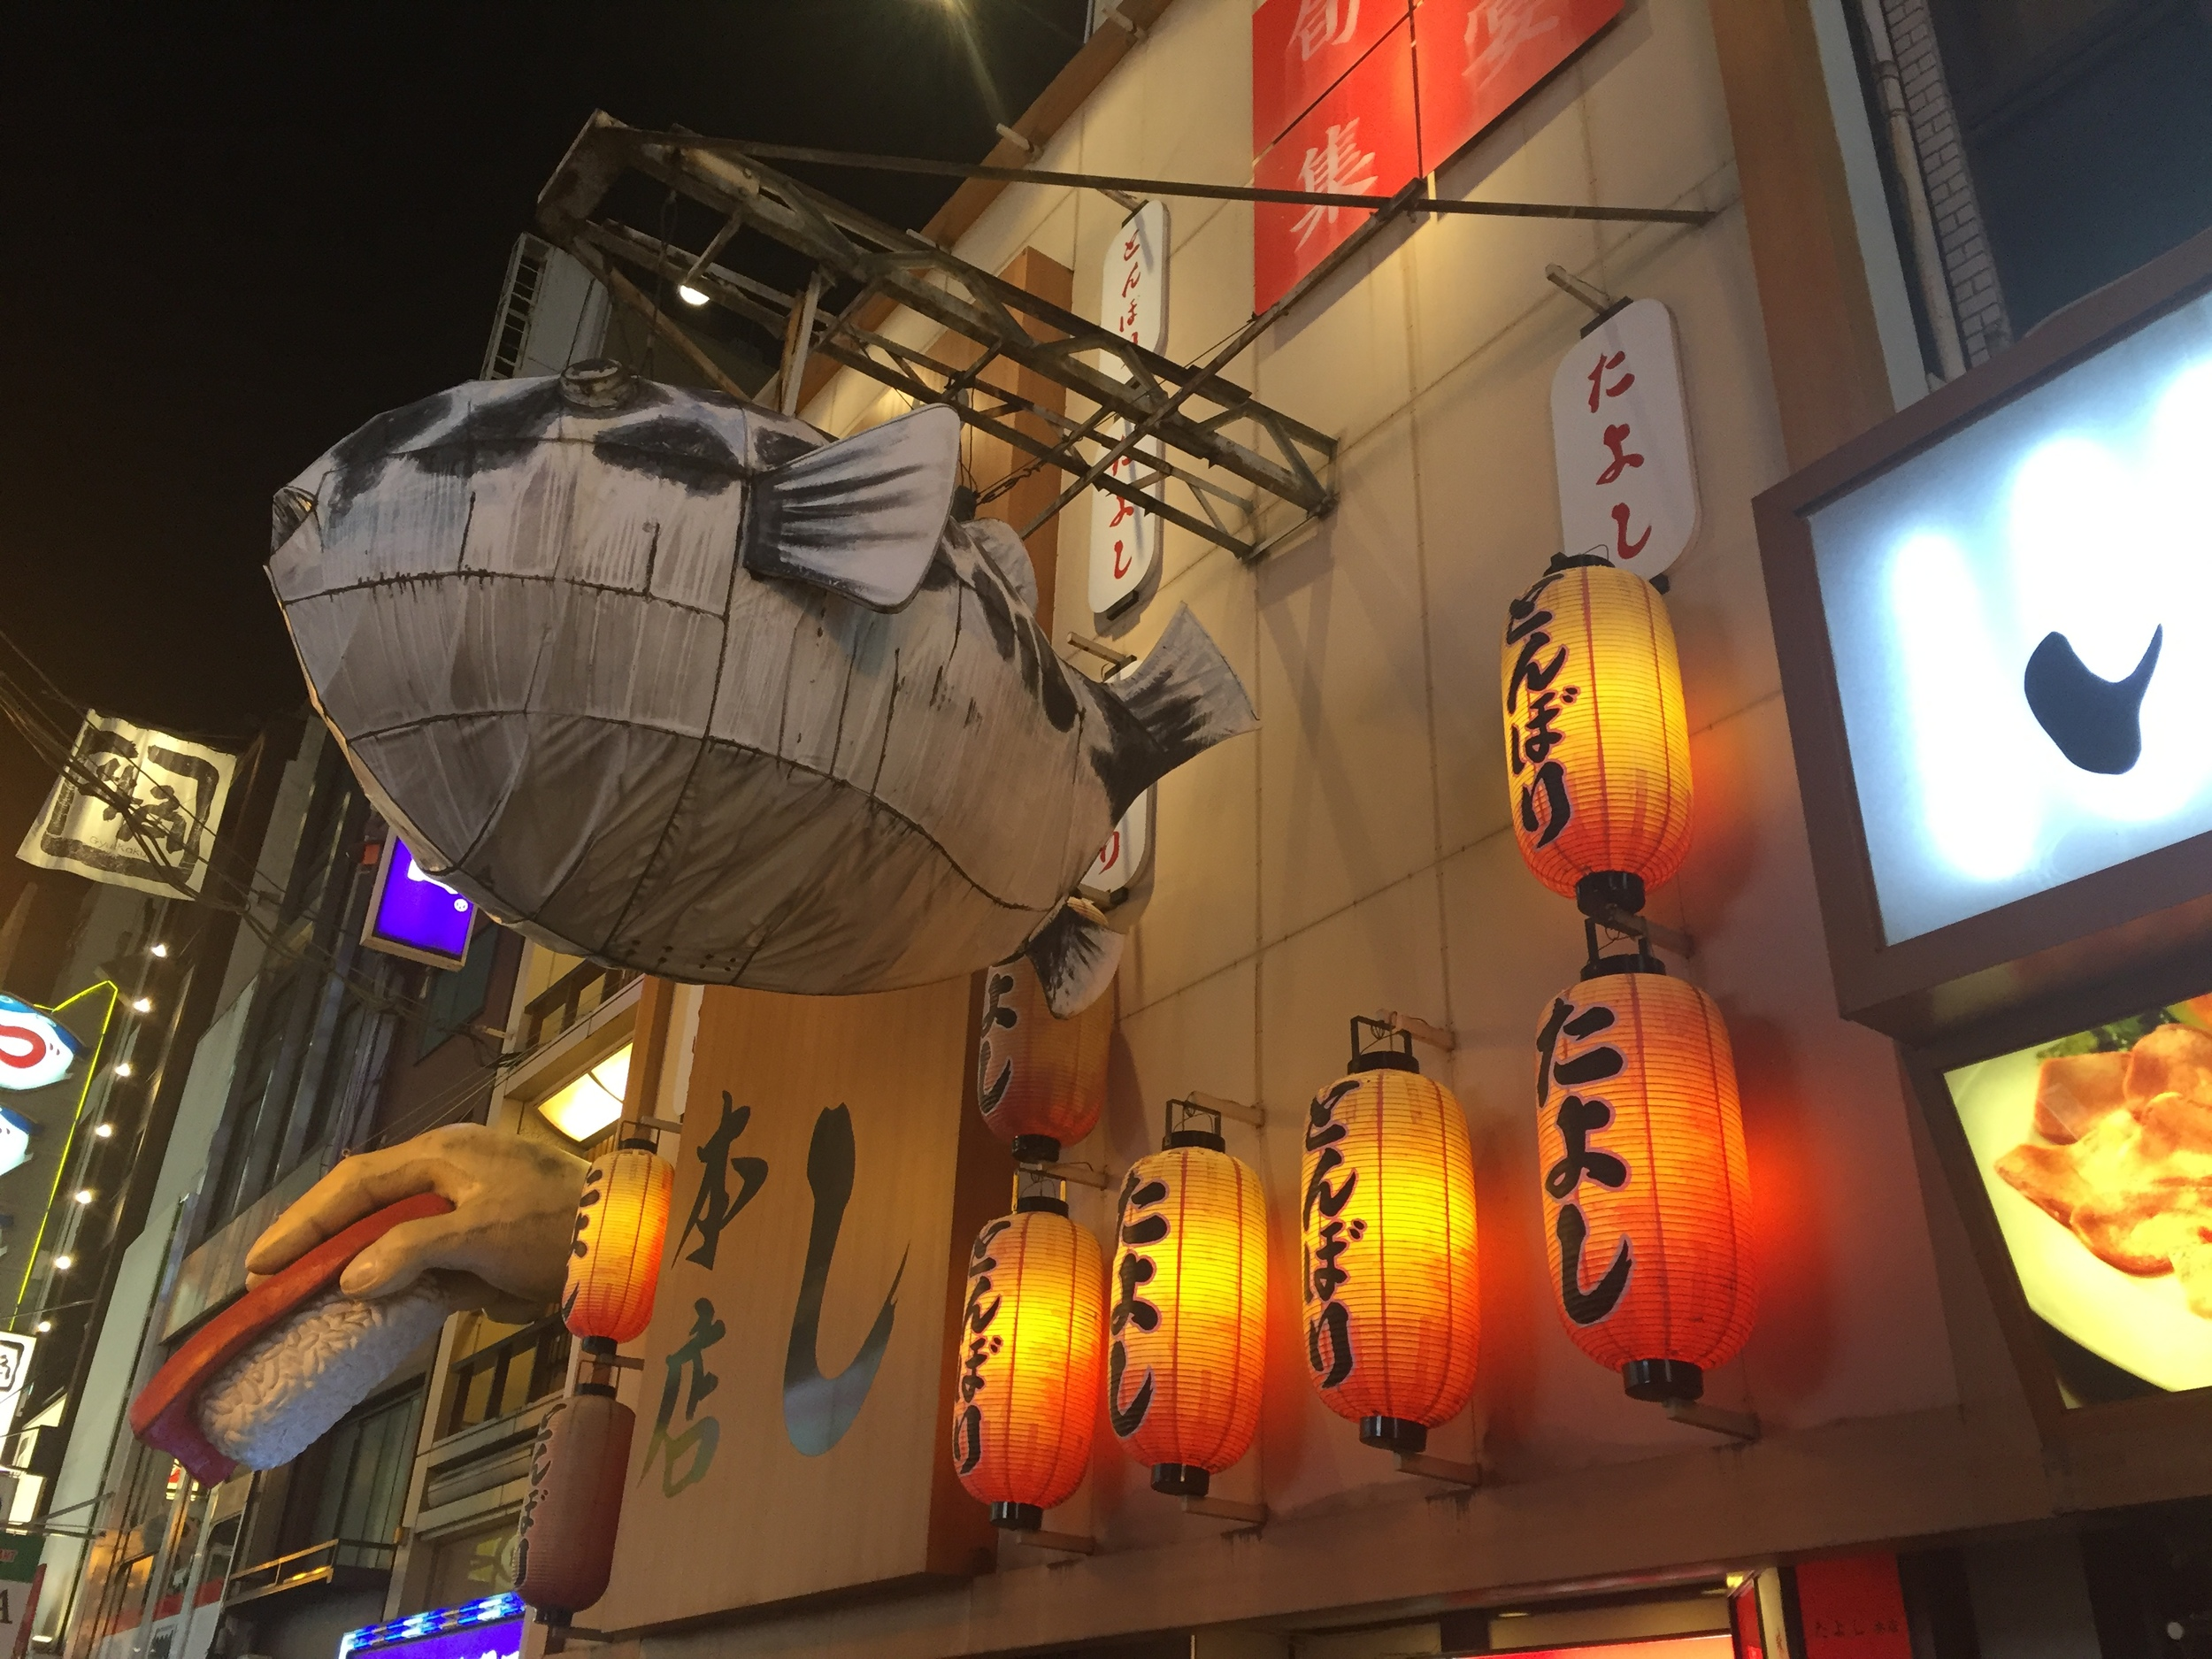 """""""Osaka style"""" - Dotonbori at Osaka: for your viewing pleasure. Crazy experience for the Bug Me team in the Streets of the japanese culture. Unique with the shops, restaurants, neons, lanterns and butiful commercial sculptures!"""